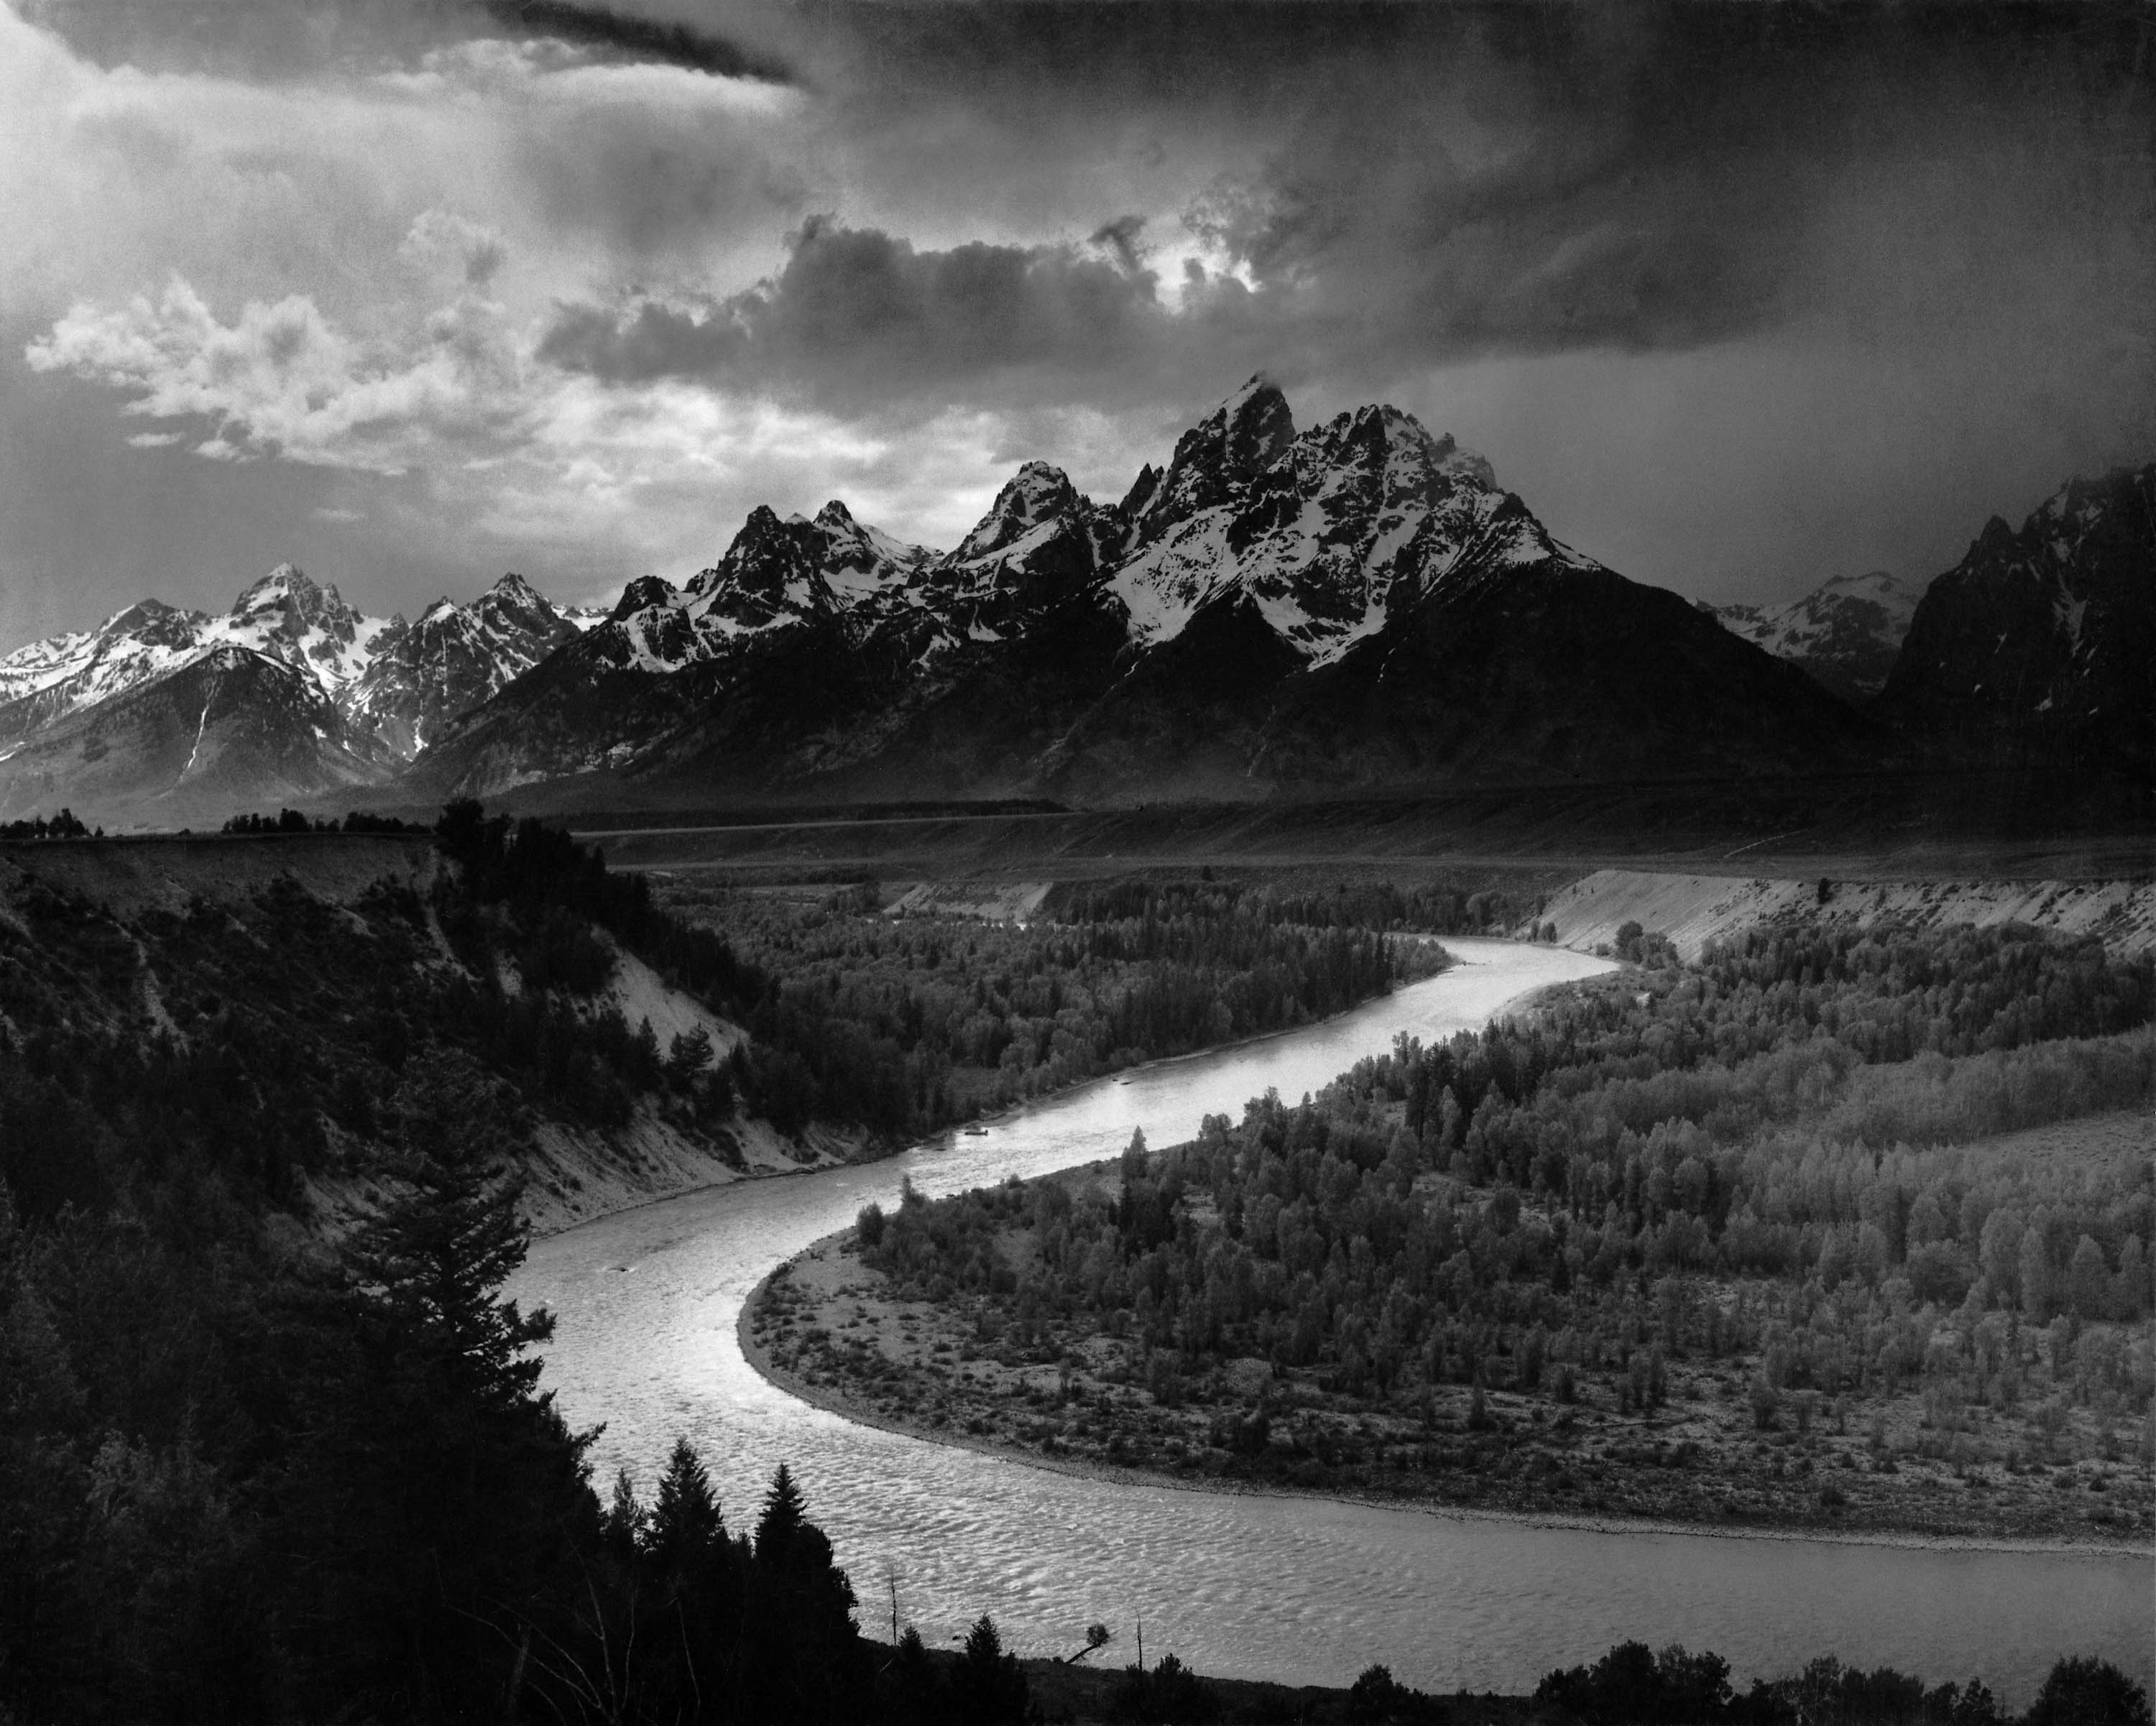 Adams The Tetons and the Snake River image